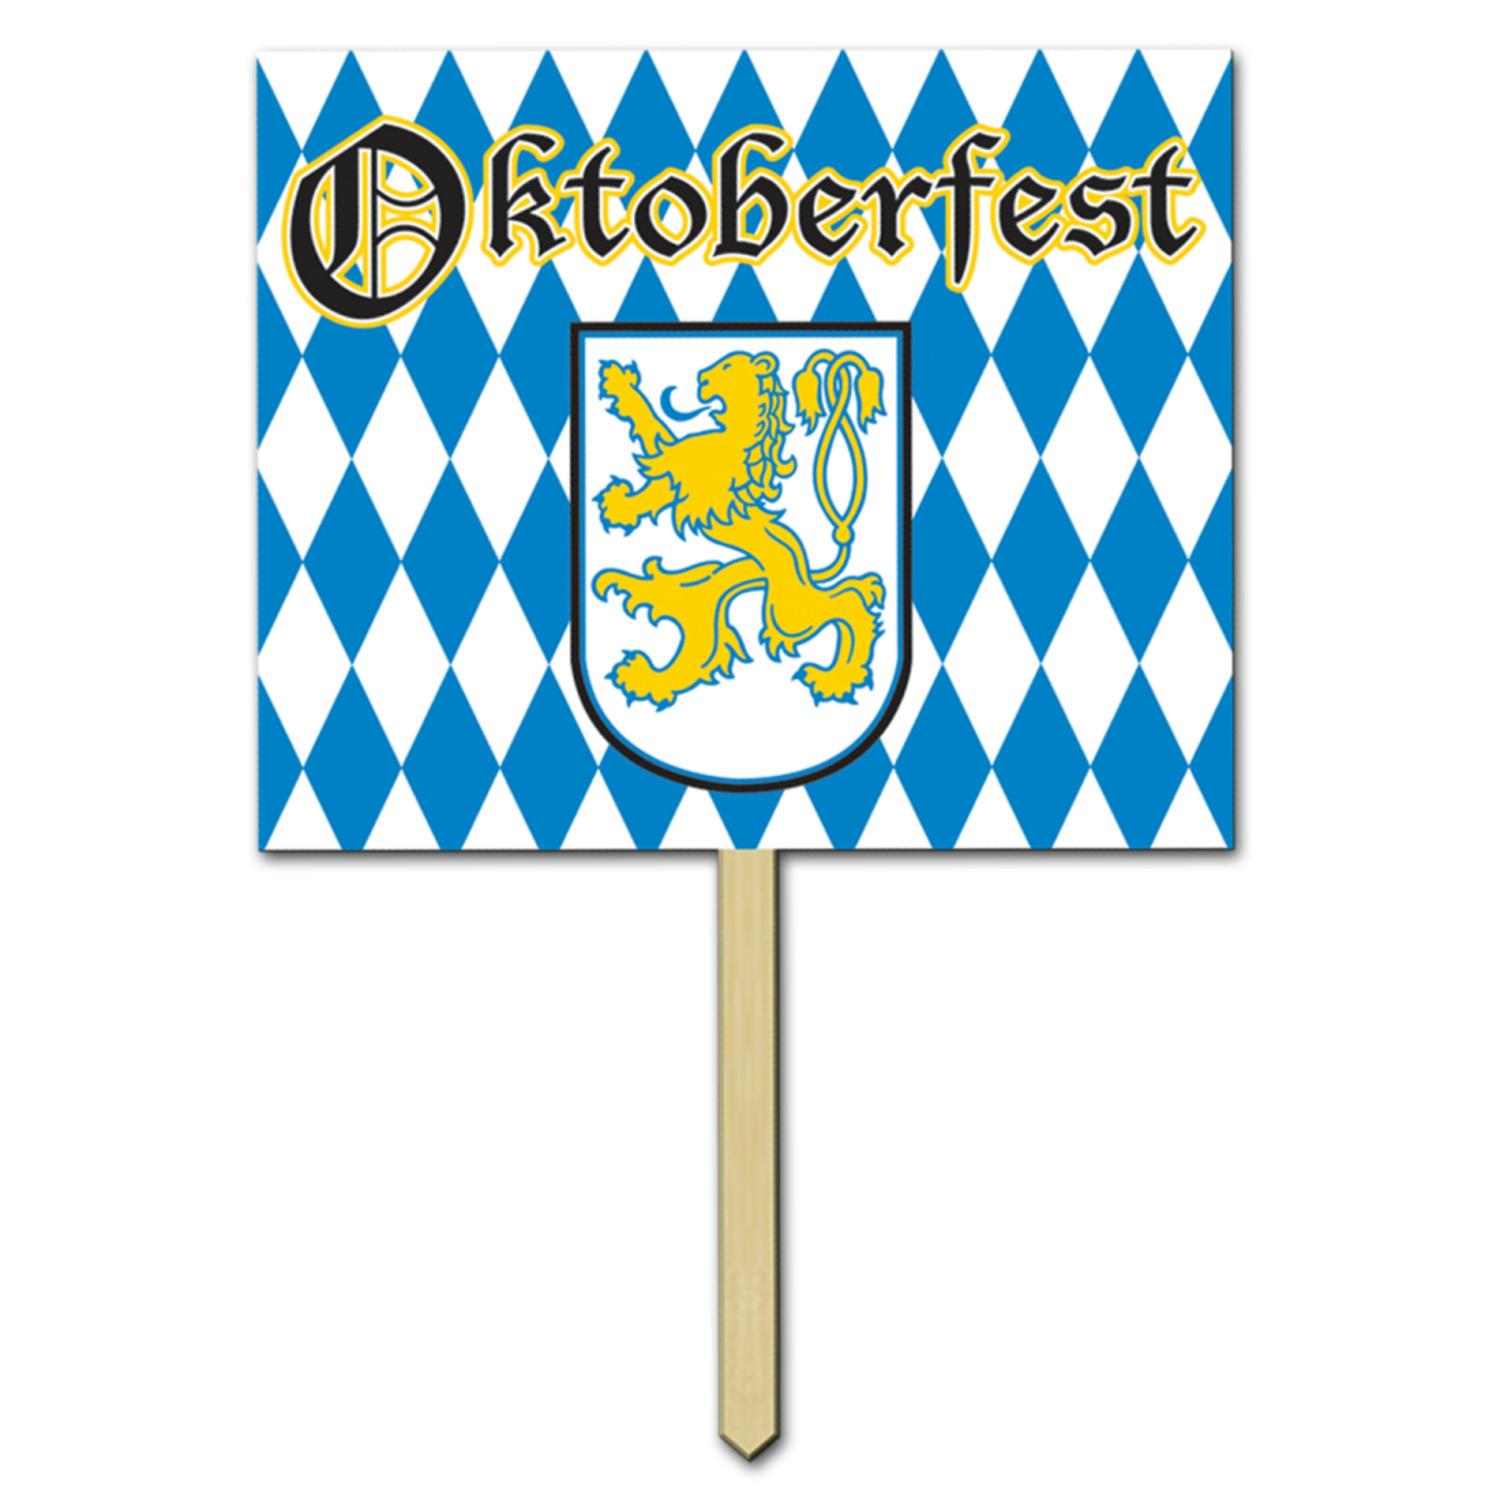 Pack of 6 White and Blue German Oktoberfest Party Yard Signs on Wooden Stakes 15""